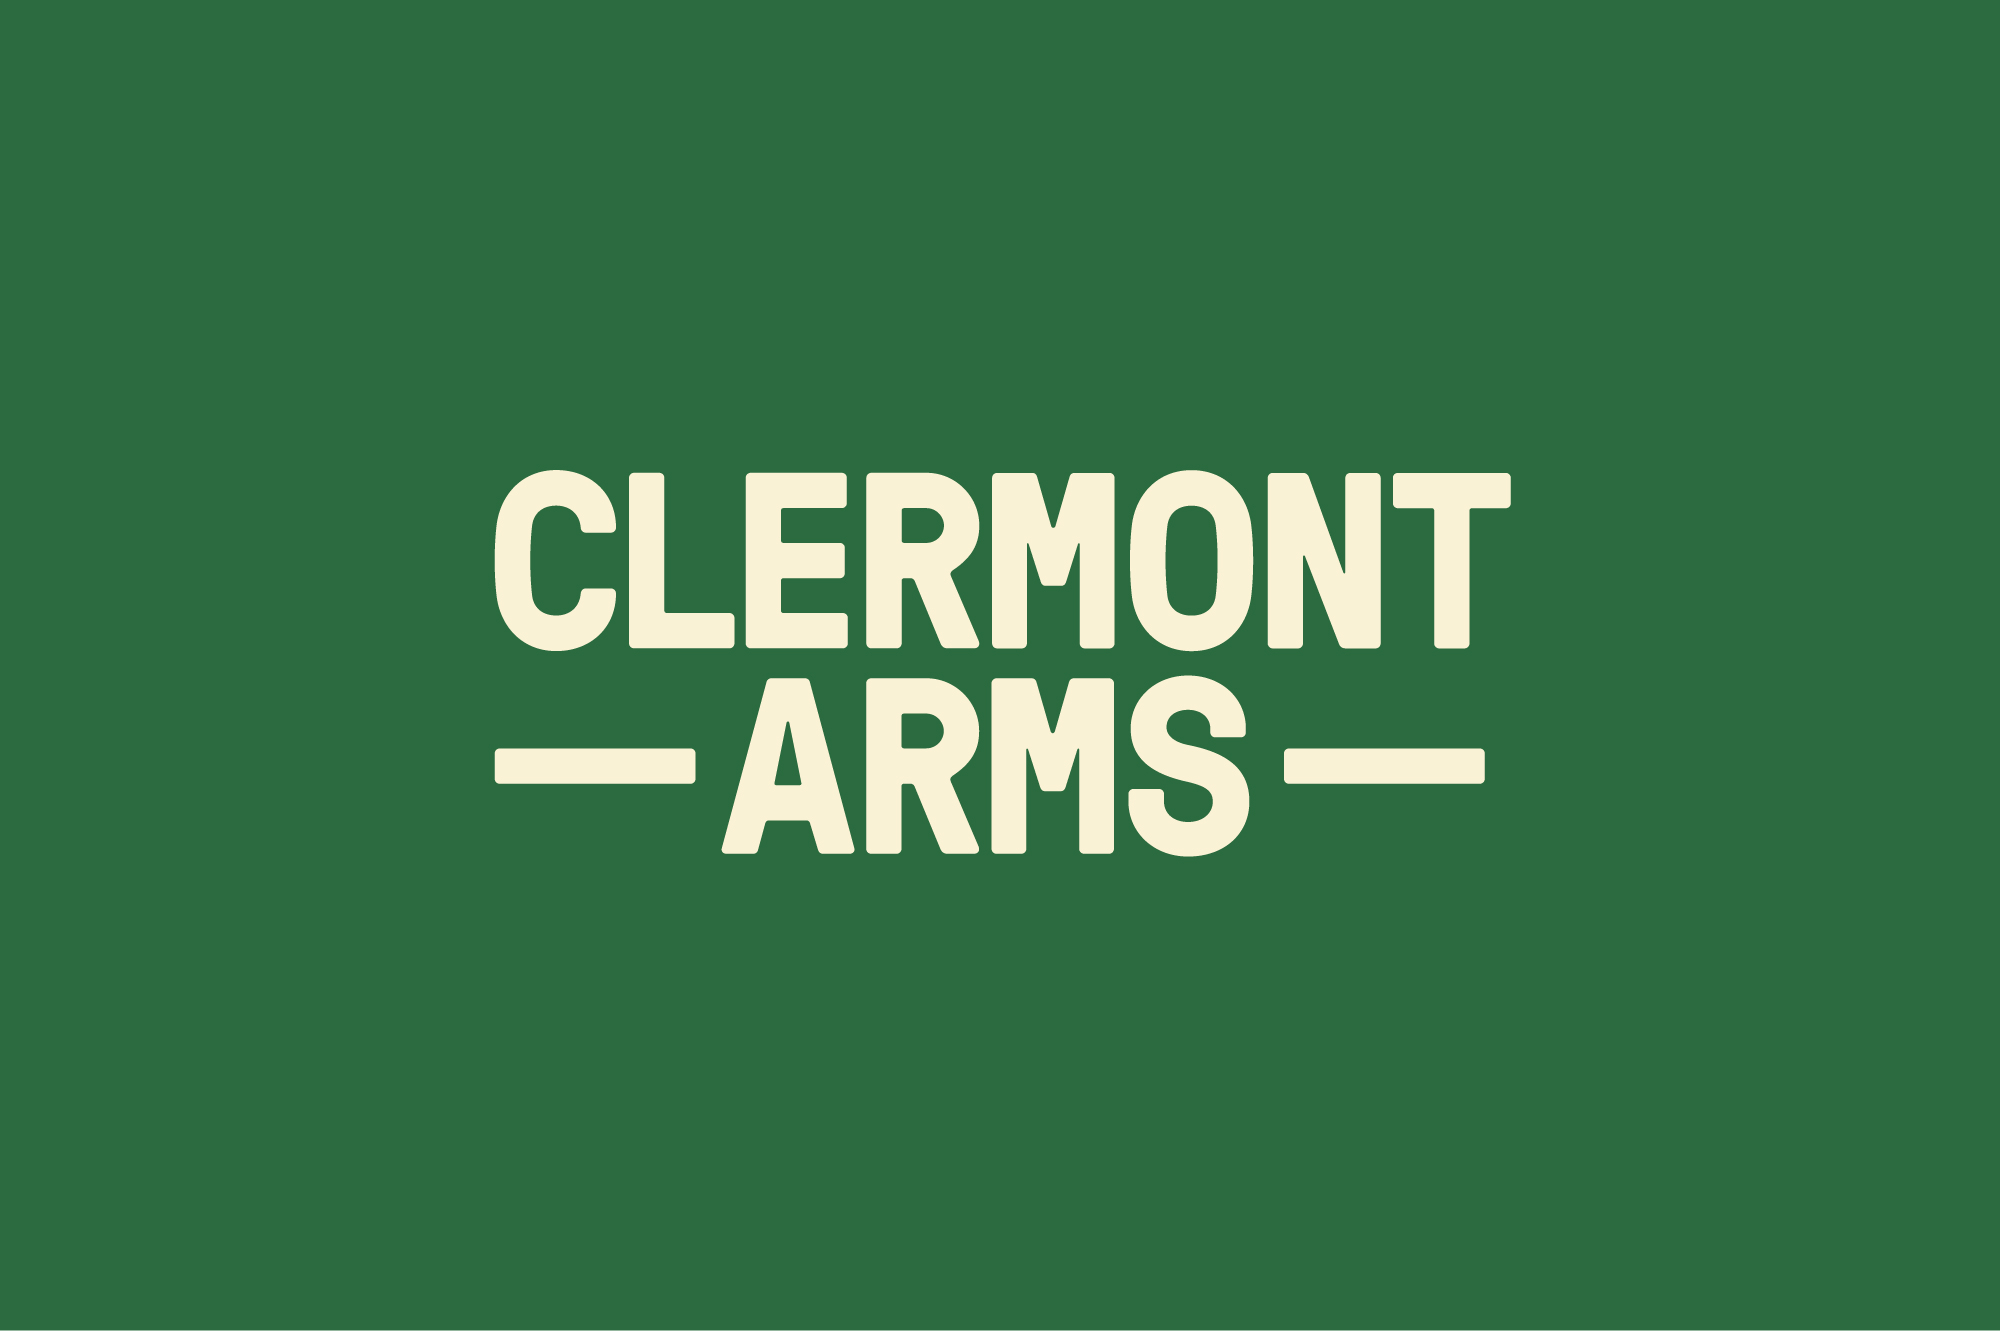 Cover image: Clermont Arms